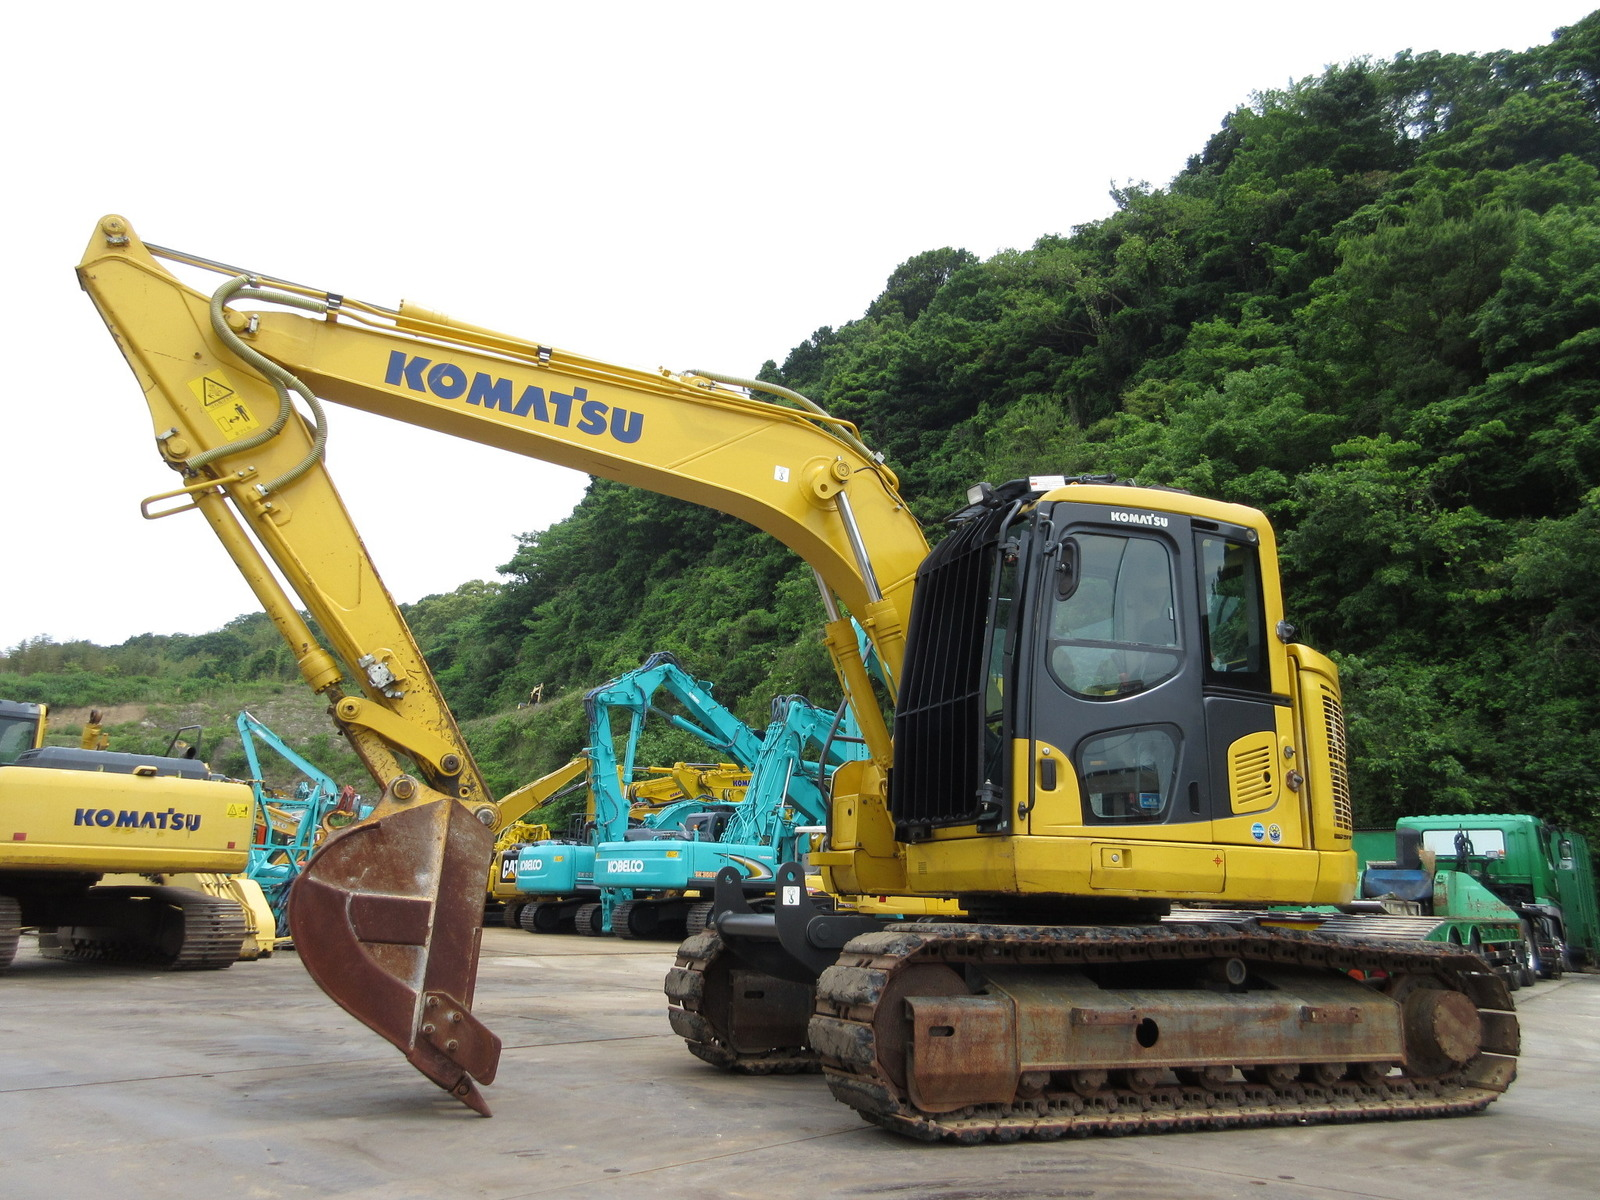 Used Construction Machine used Excavator KOMATSU PC138US-10 Photos